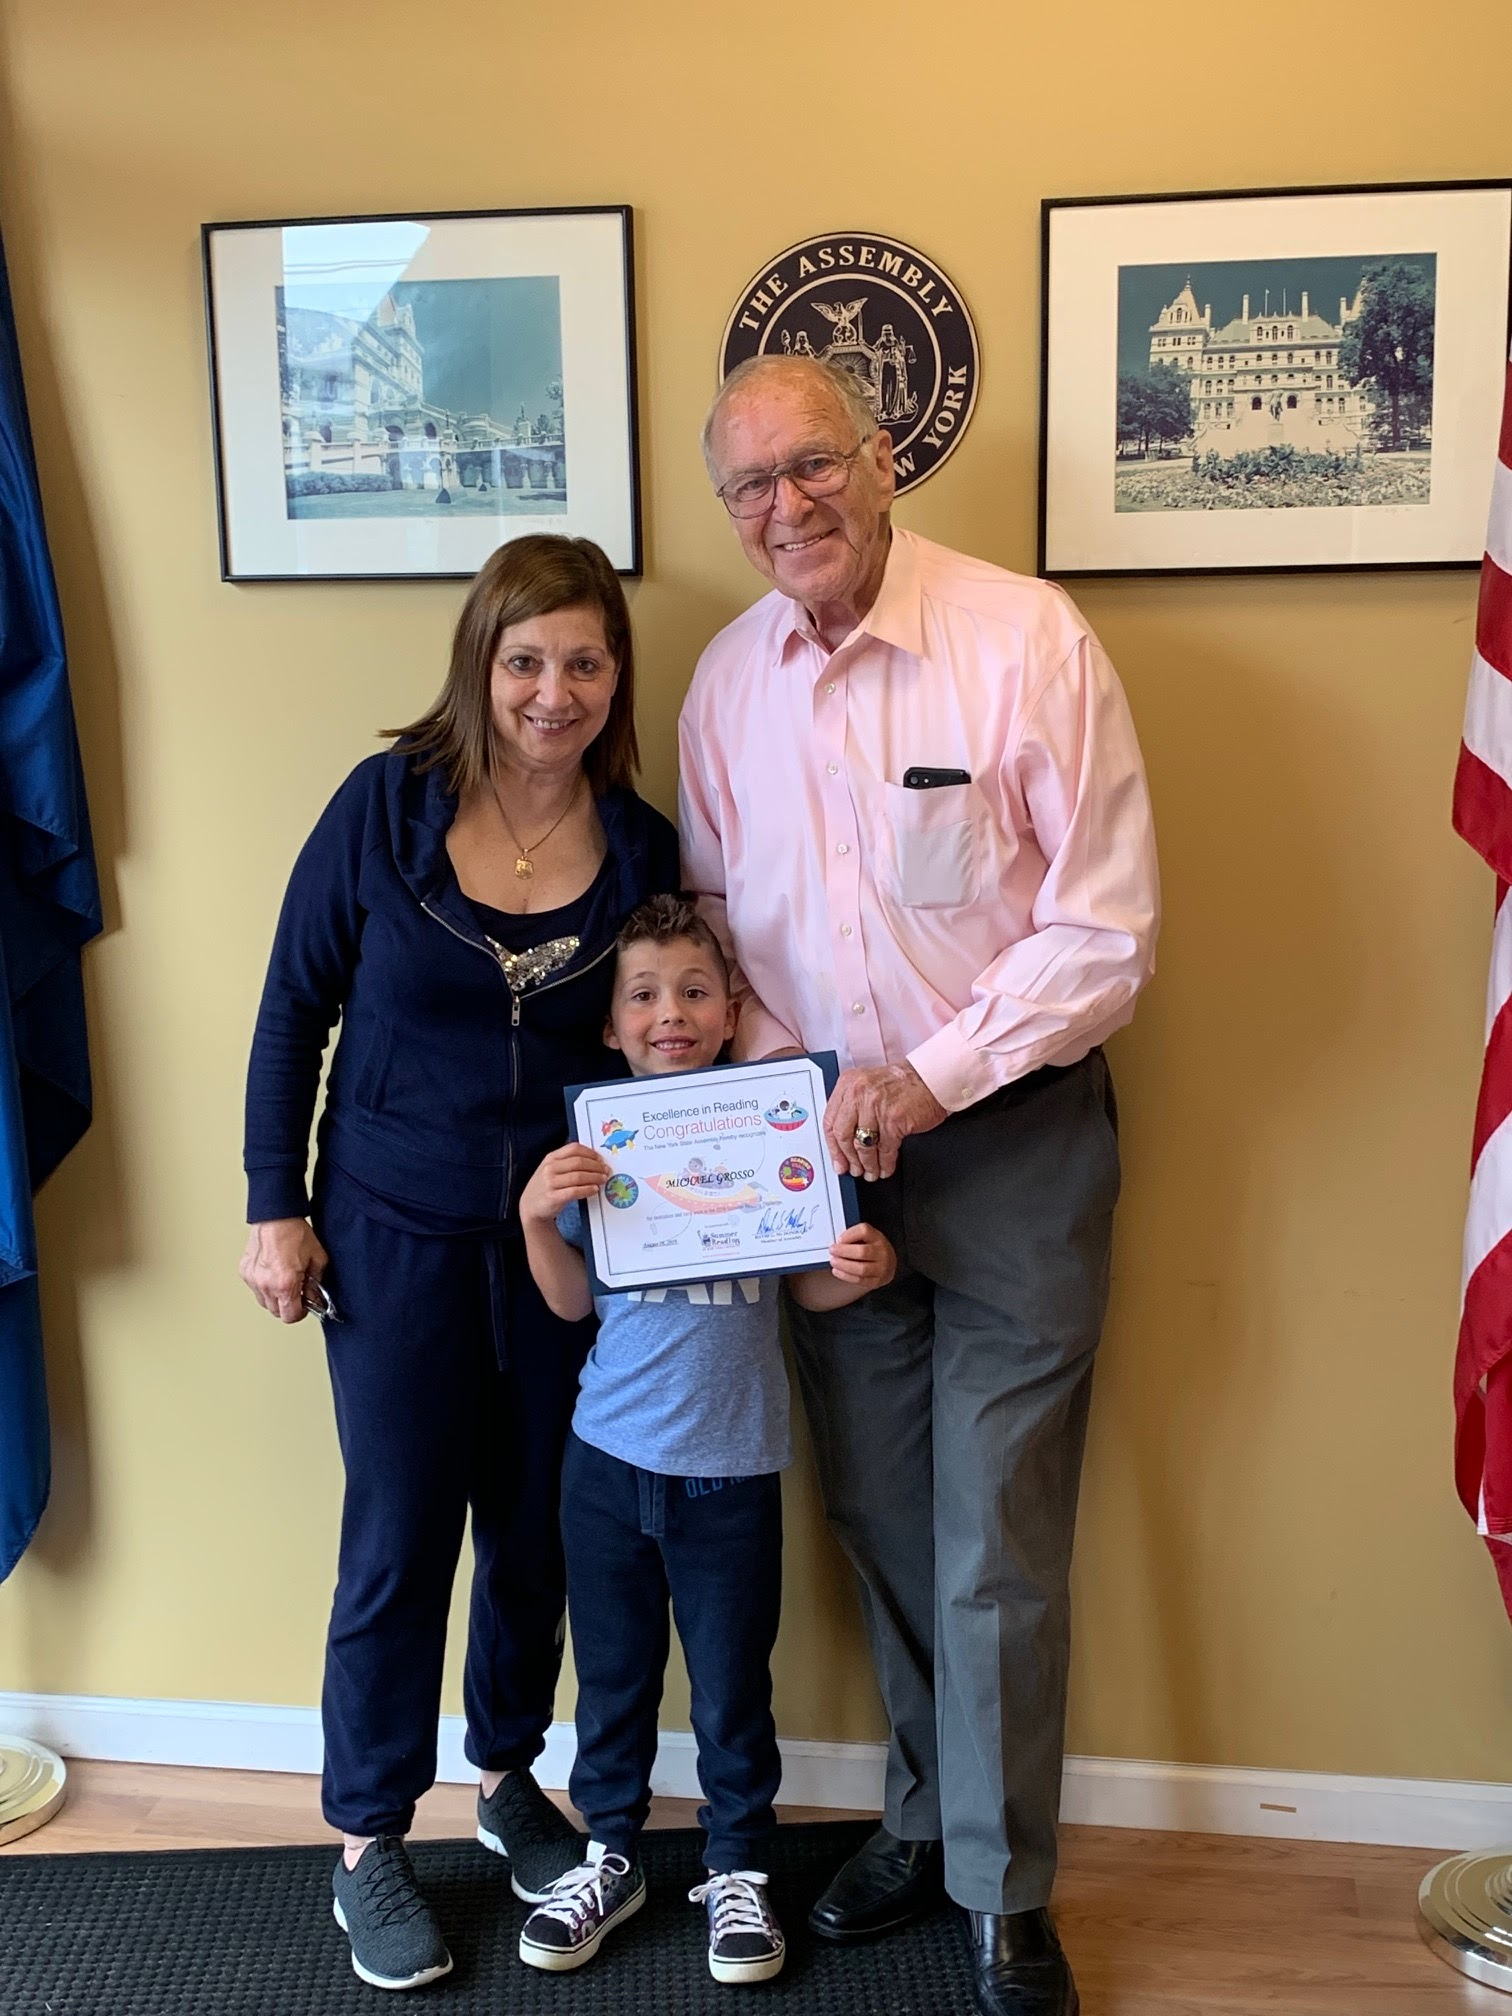 Assemblyman Dave McDonough (R,C,I-Merrick) pictured with Michael Grosso [center] and his Grandmother Angela Curro [left] with Michael's Summer Reading certificate.